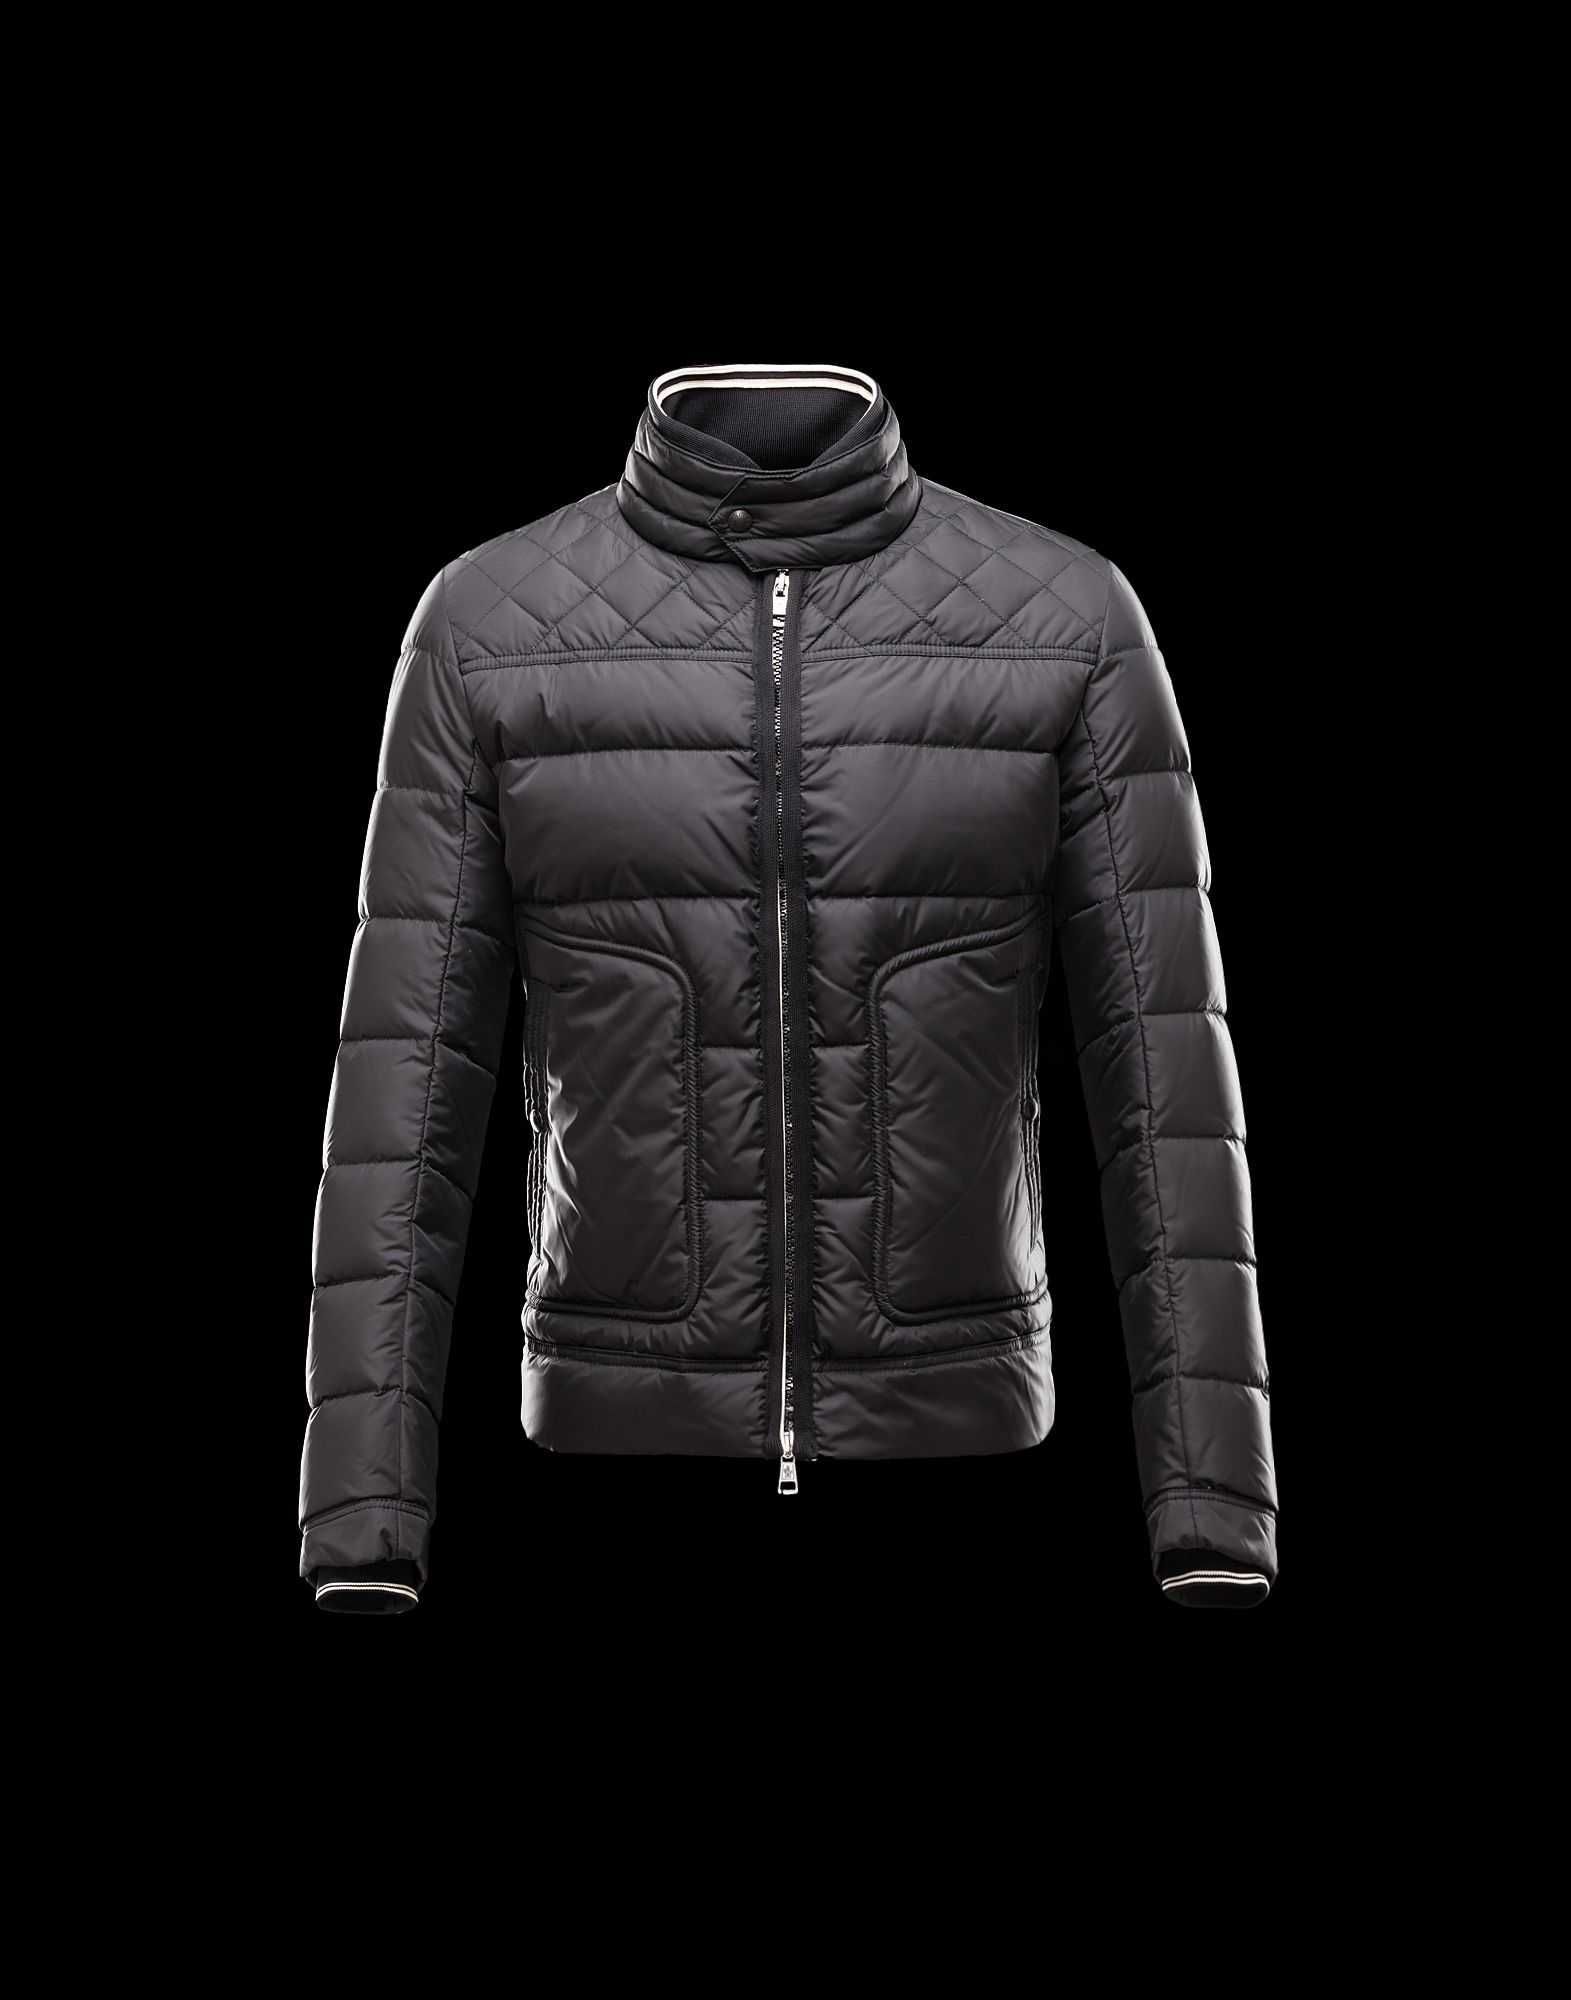 Moncler Outlet Online Style Factory. the factory price